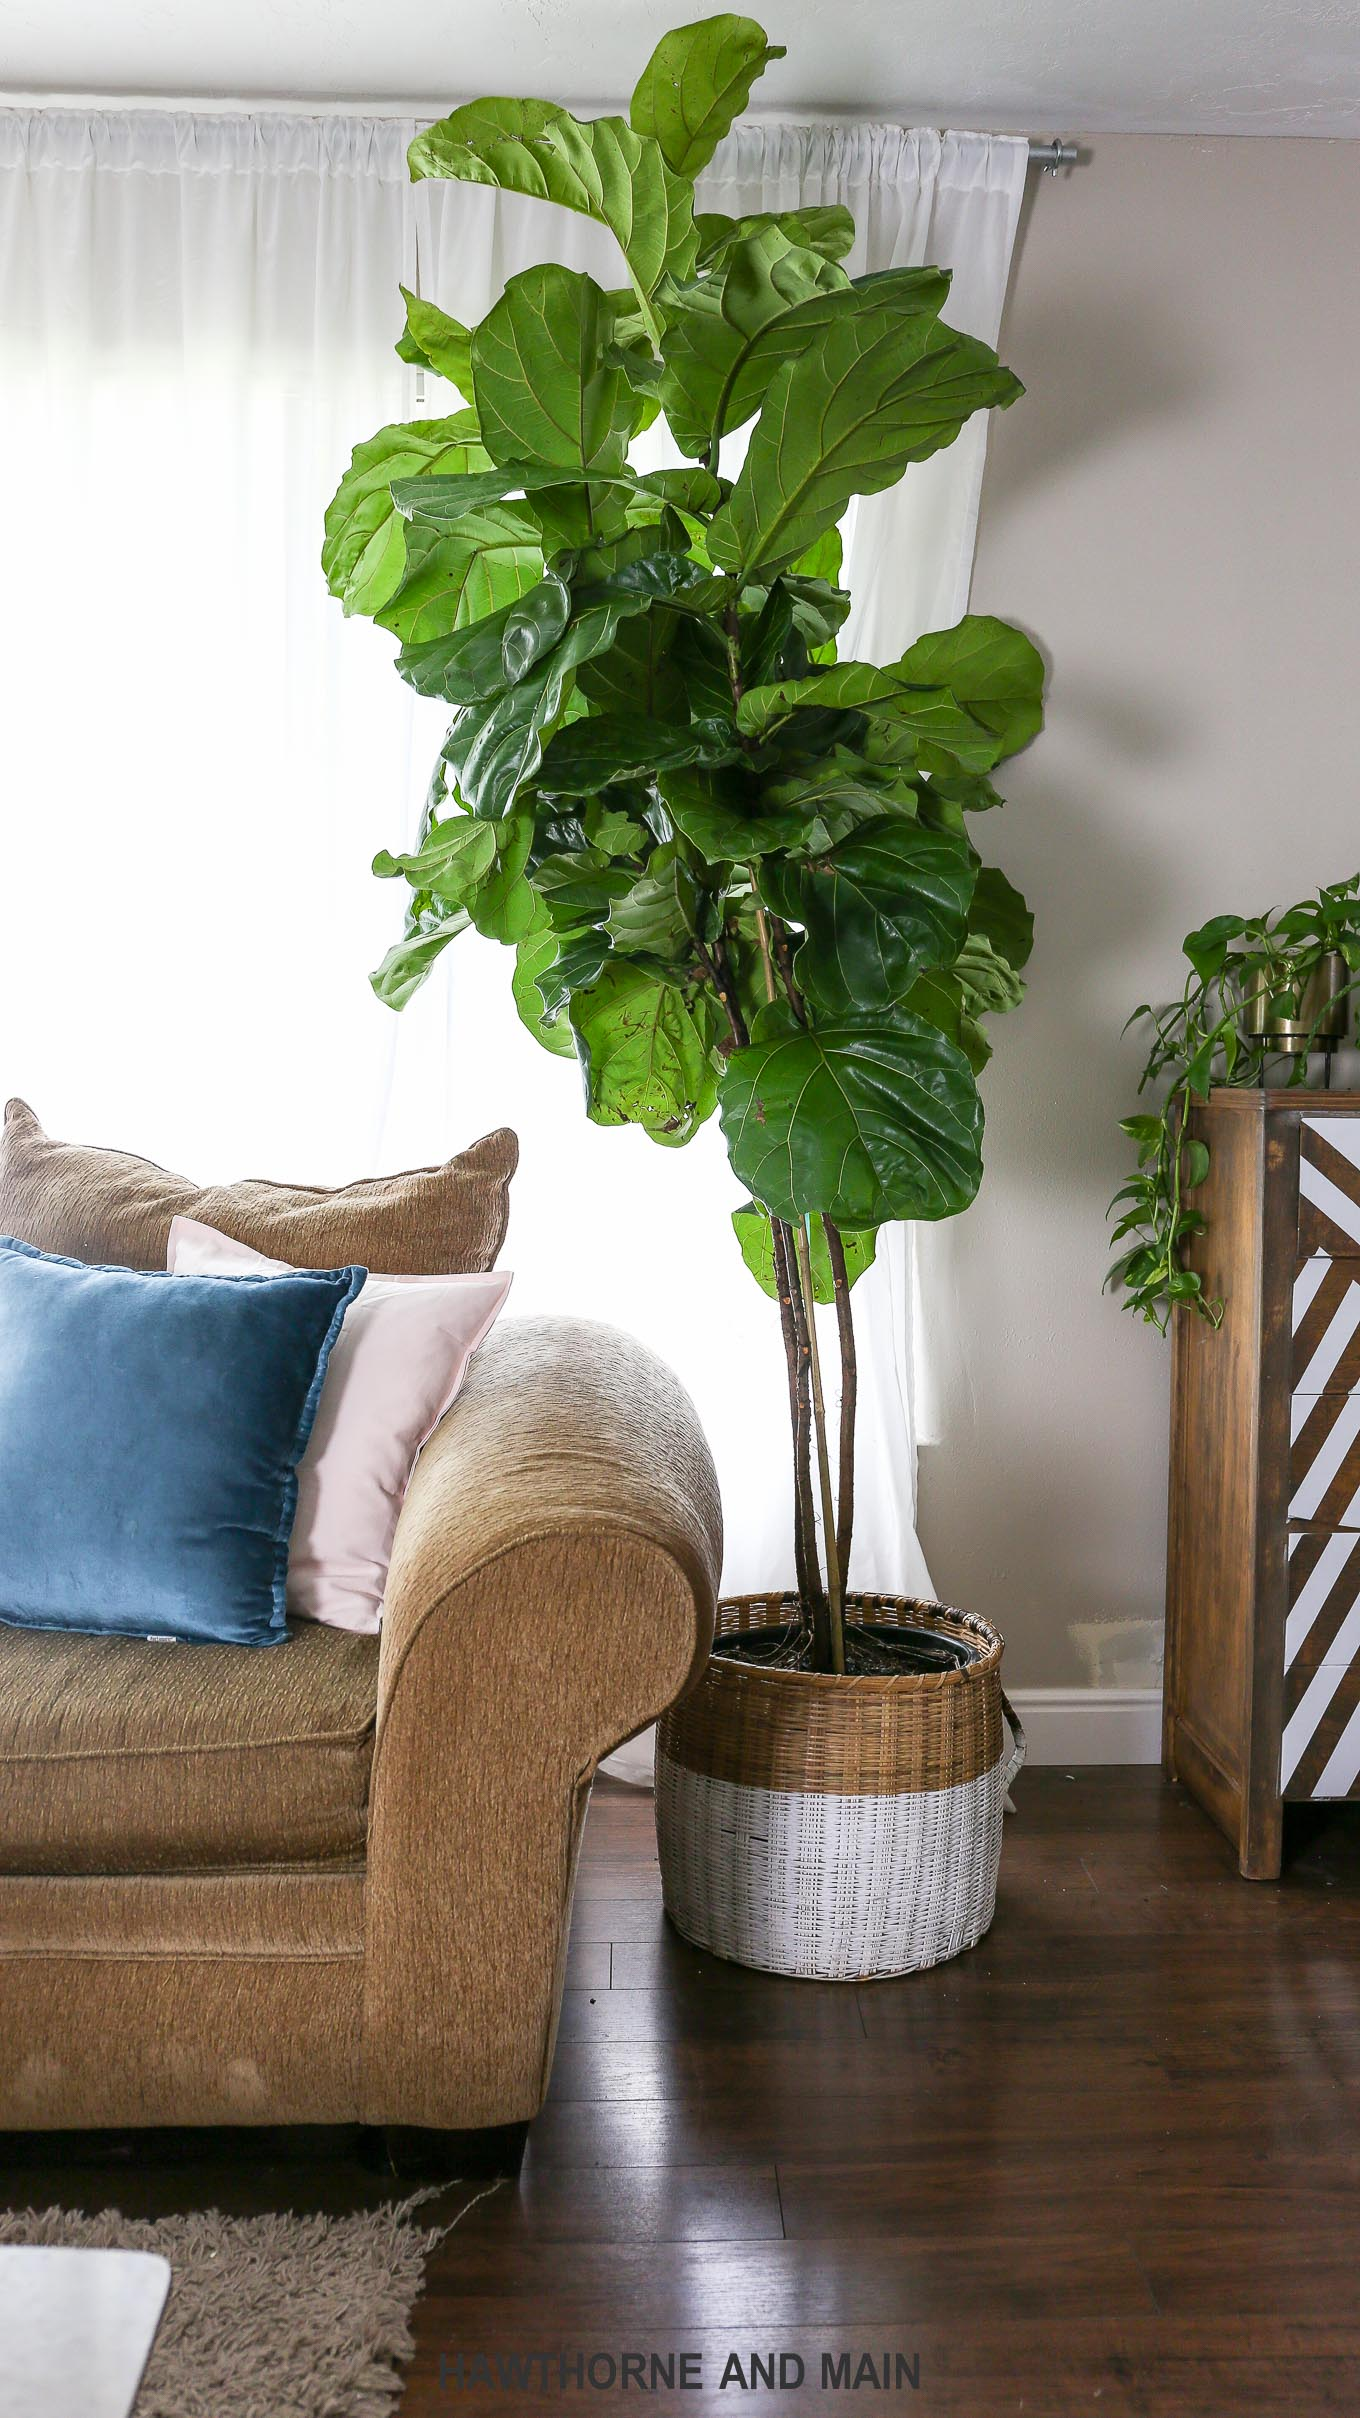 fiddle leaf fig trees are so prettybut how do you